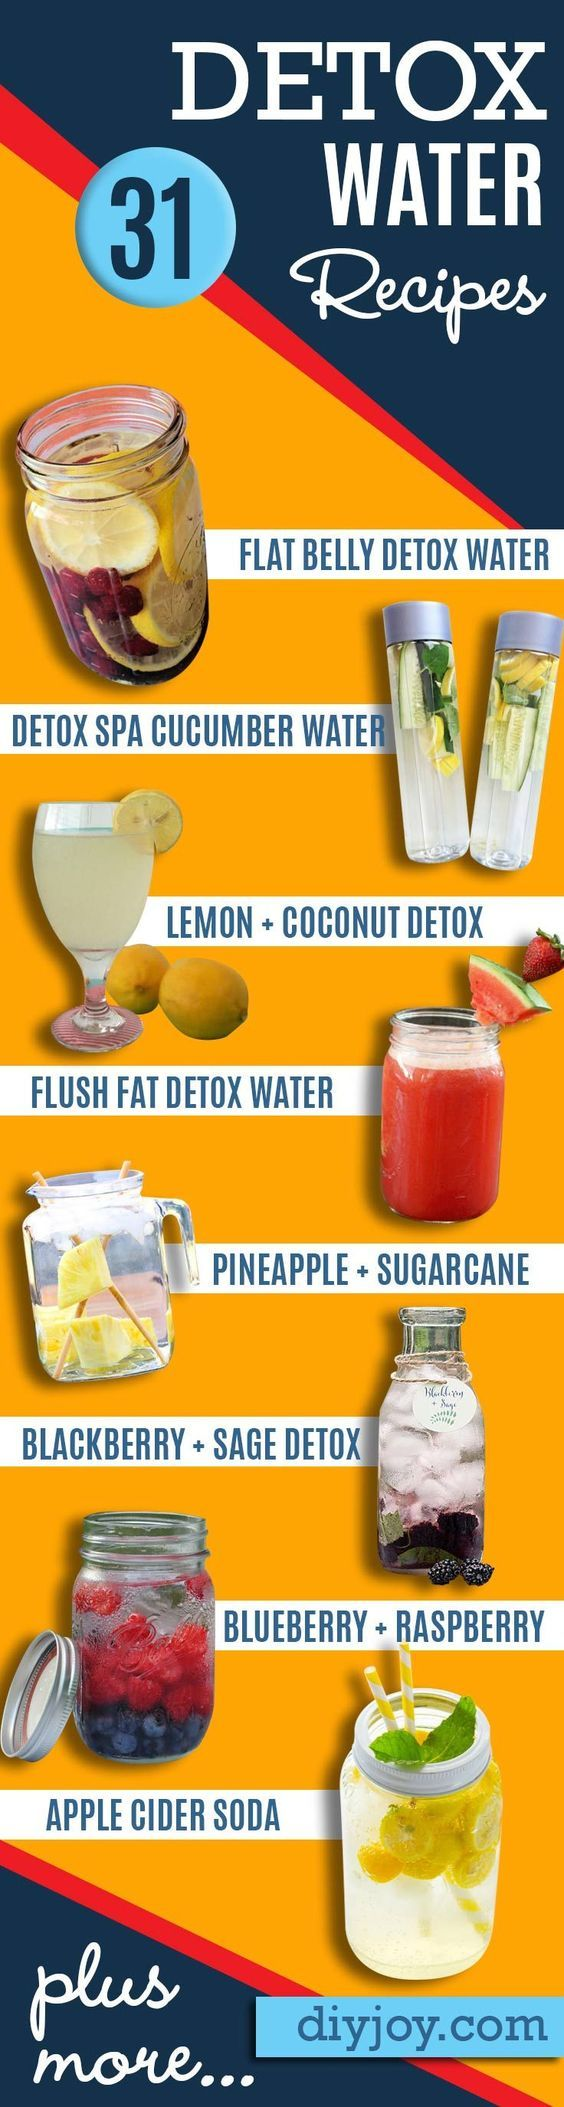 Discussion on this topic: Detox Water: The Top 25 Recipes for , detox-water-the-top-25-recipes-for/